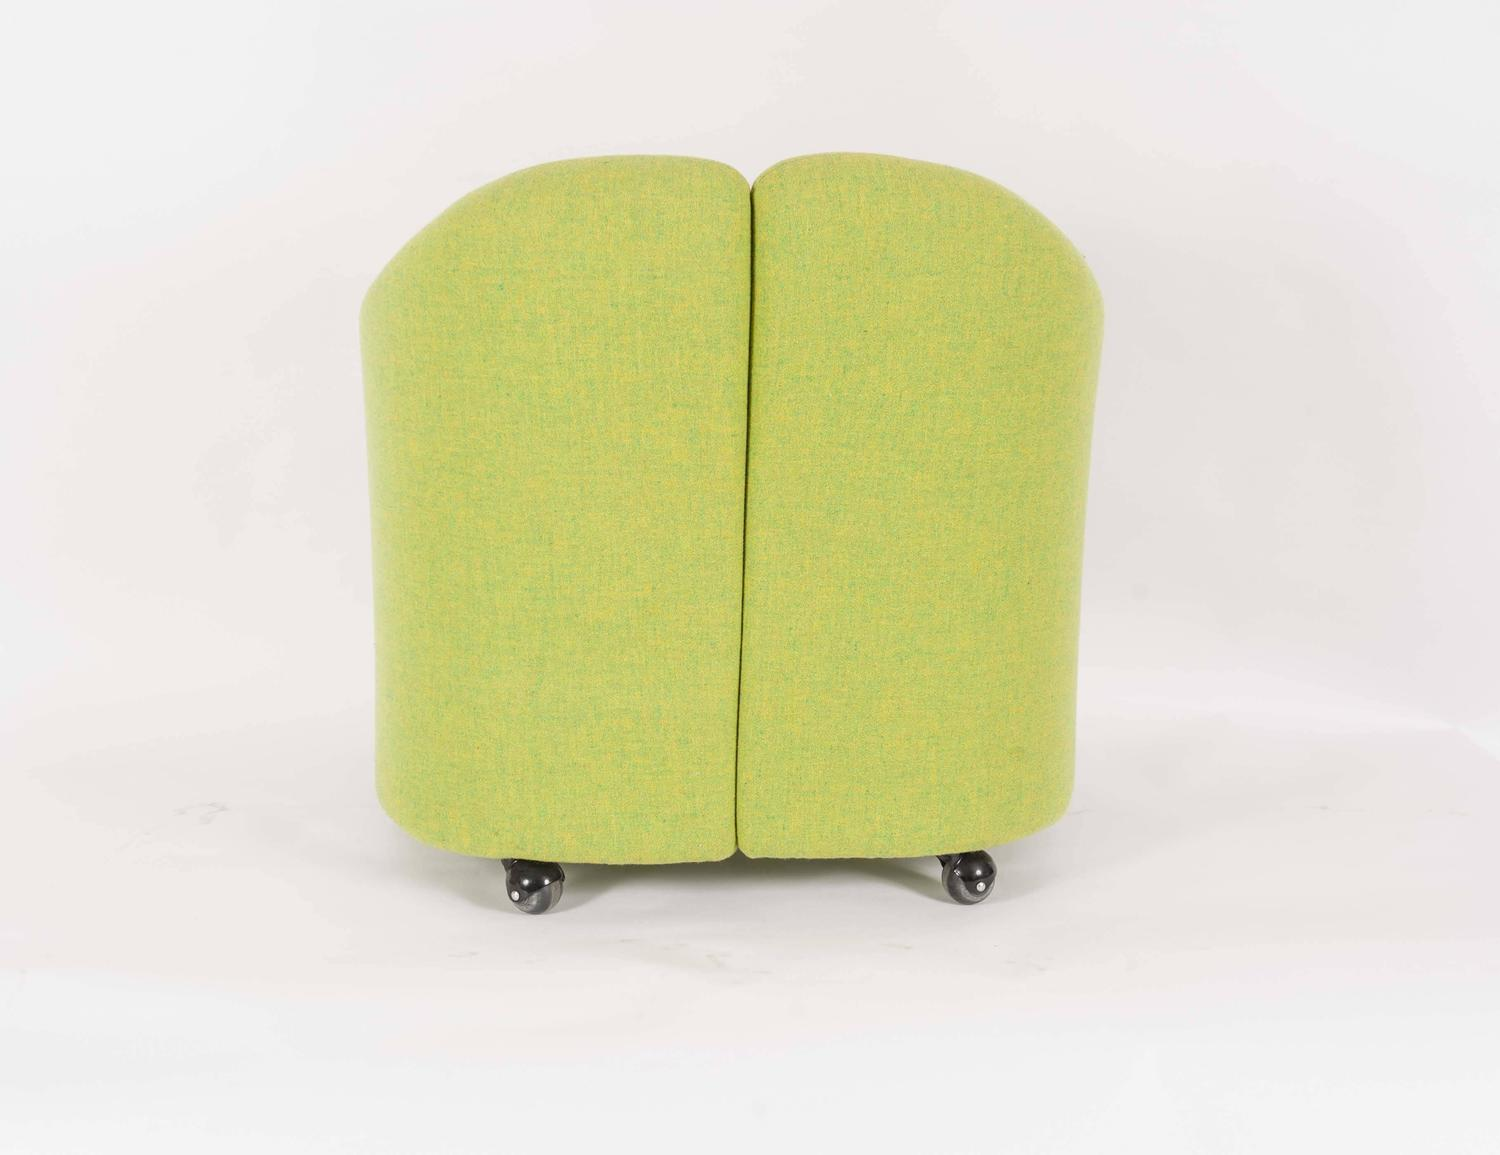 serie 142 chair kiosk design butterfly replacement covers australia set of four easy chairs series by eugenio gerli for